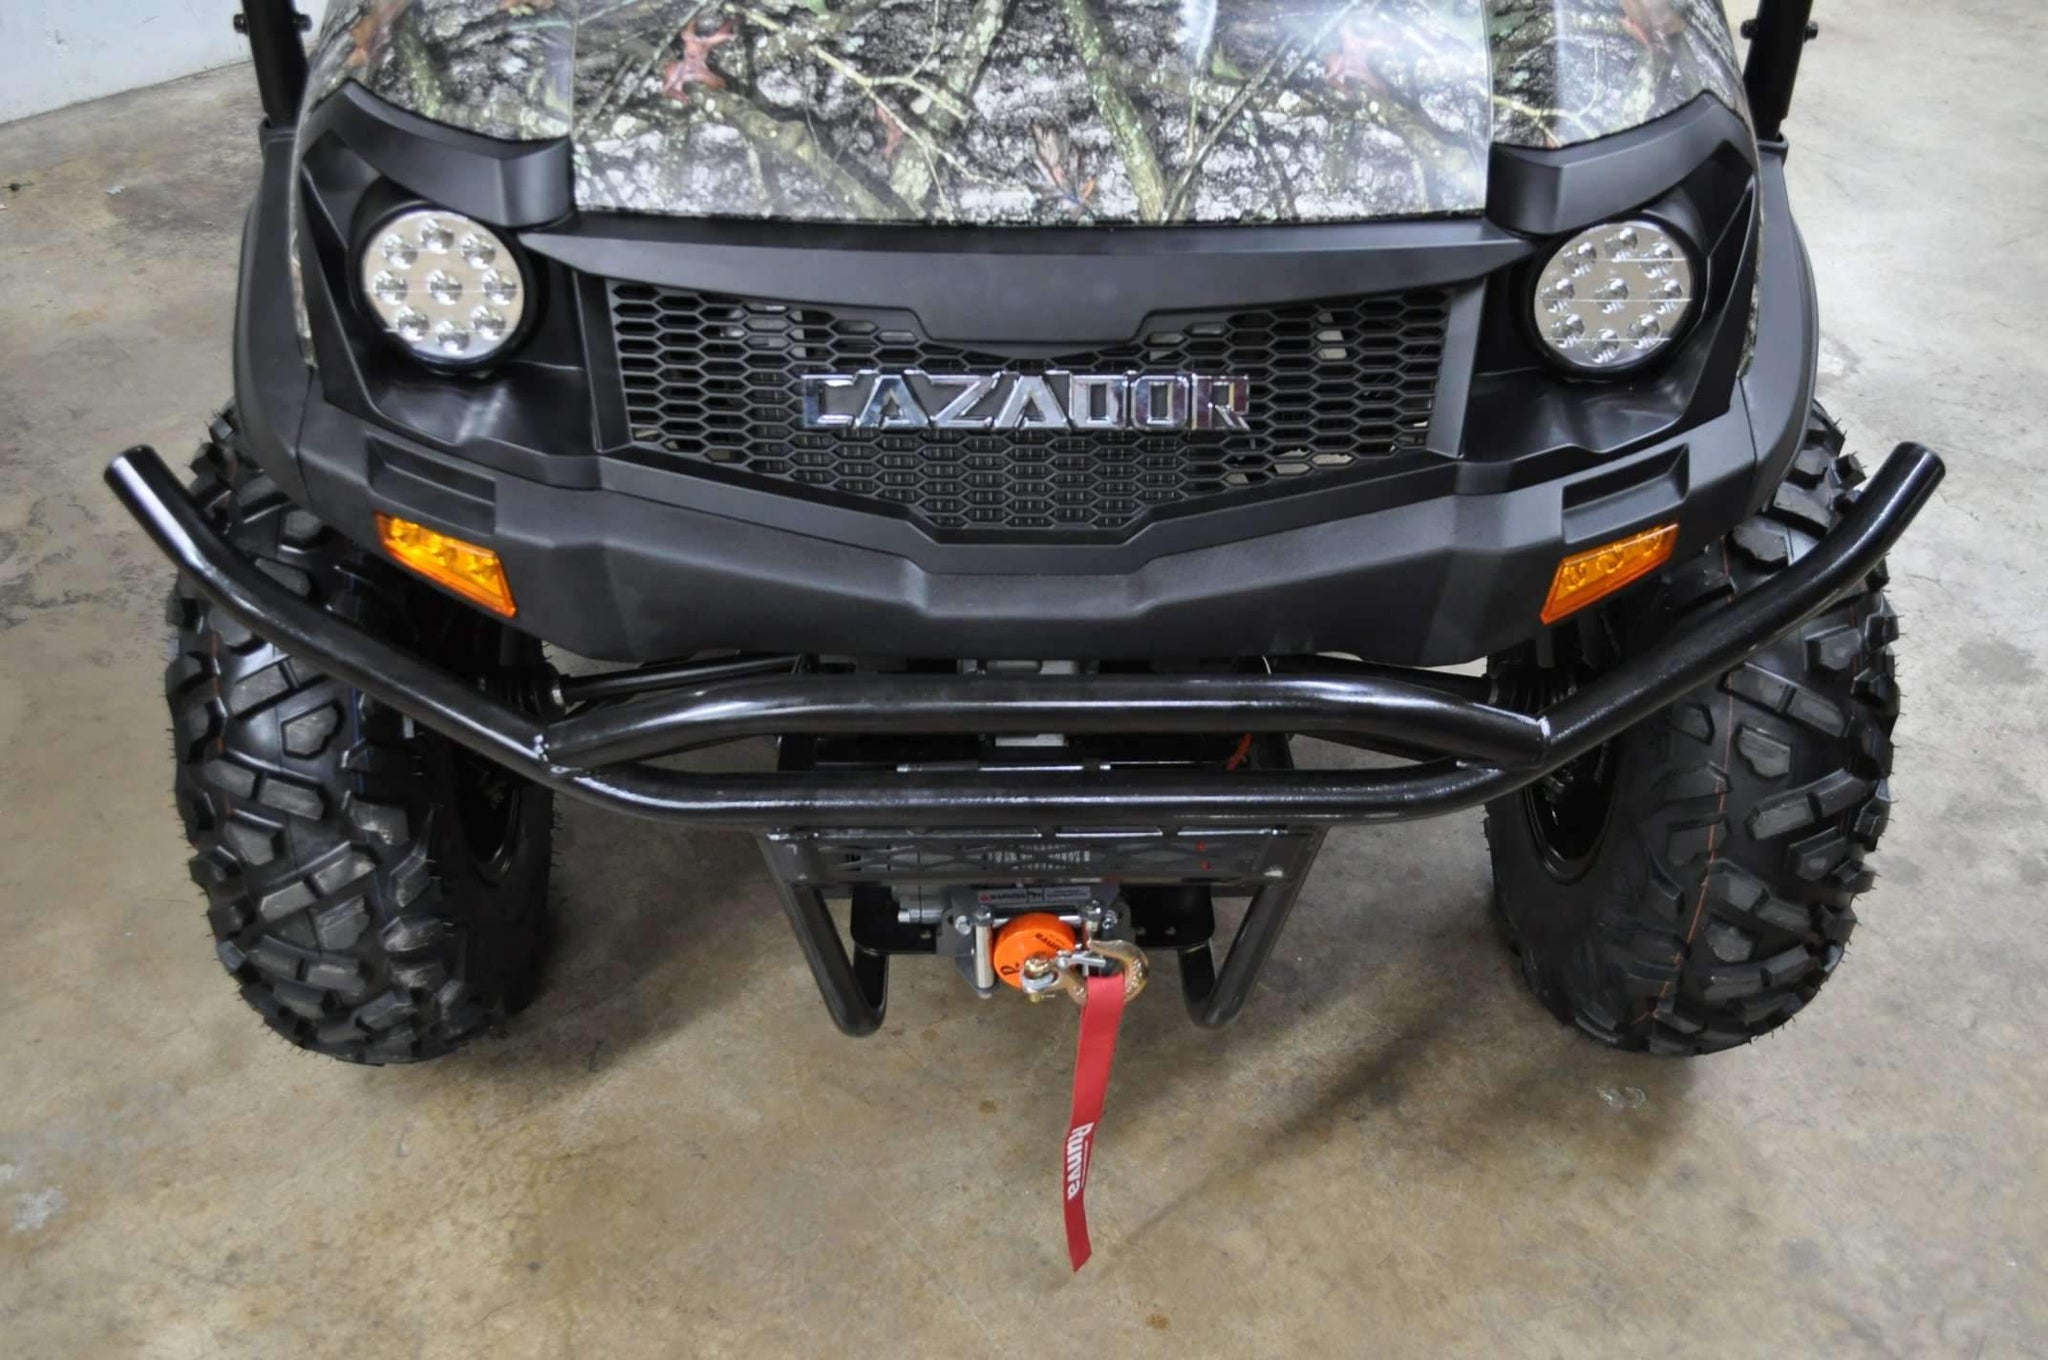 Four Wheelers For Sale Cheap Near Me >> Outfitter EFI 4x4 400cc UTV for Sale Cheap with Free ...